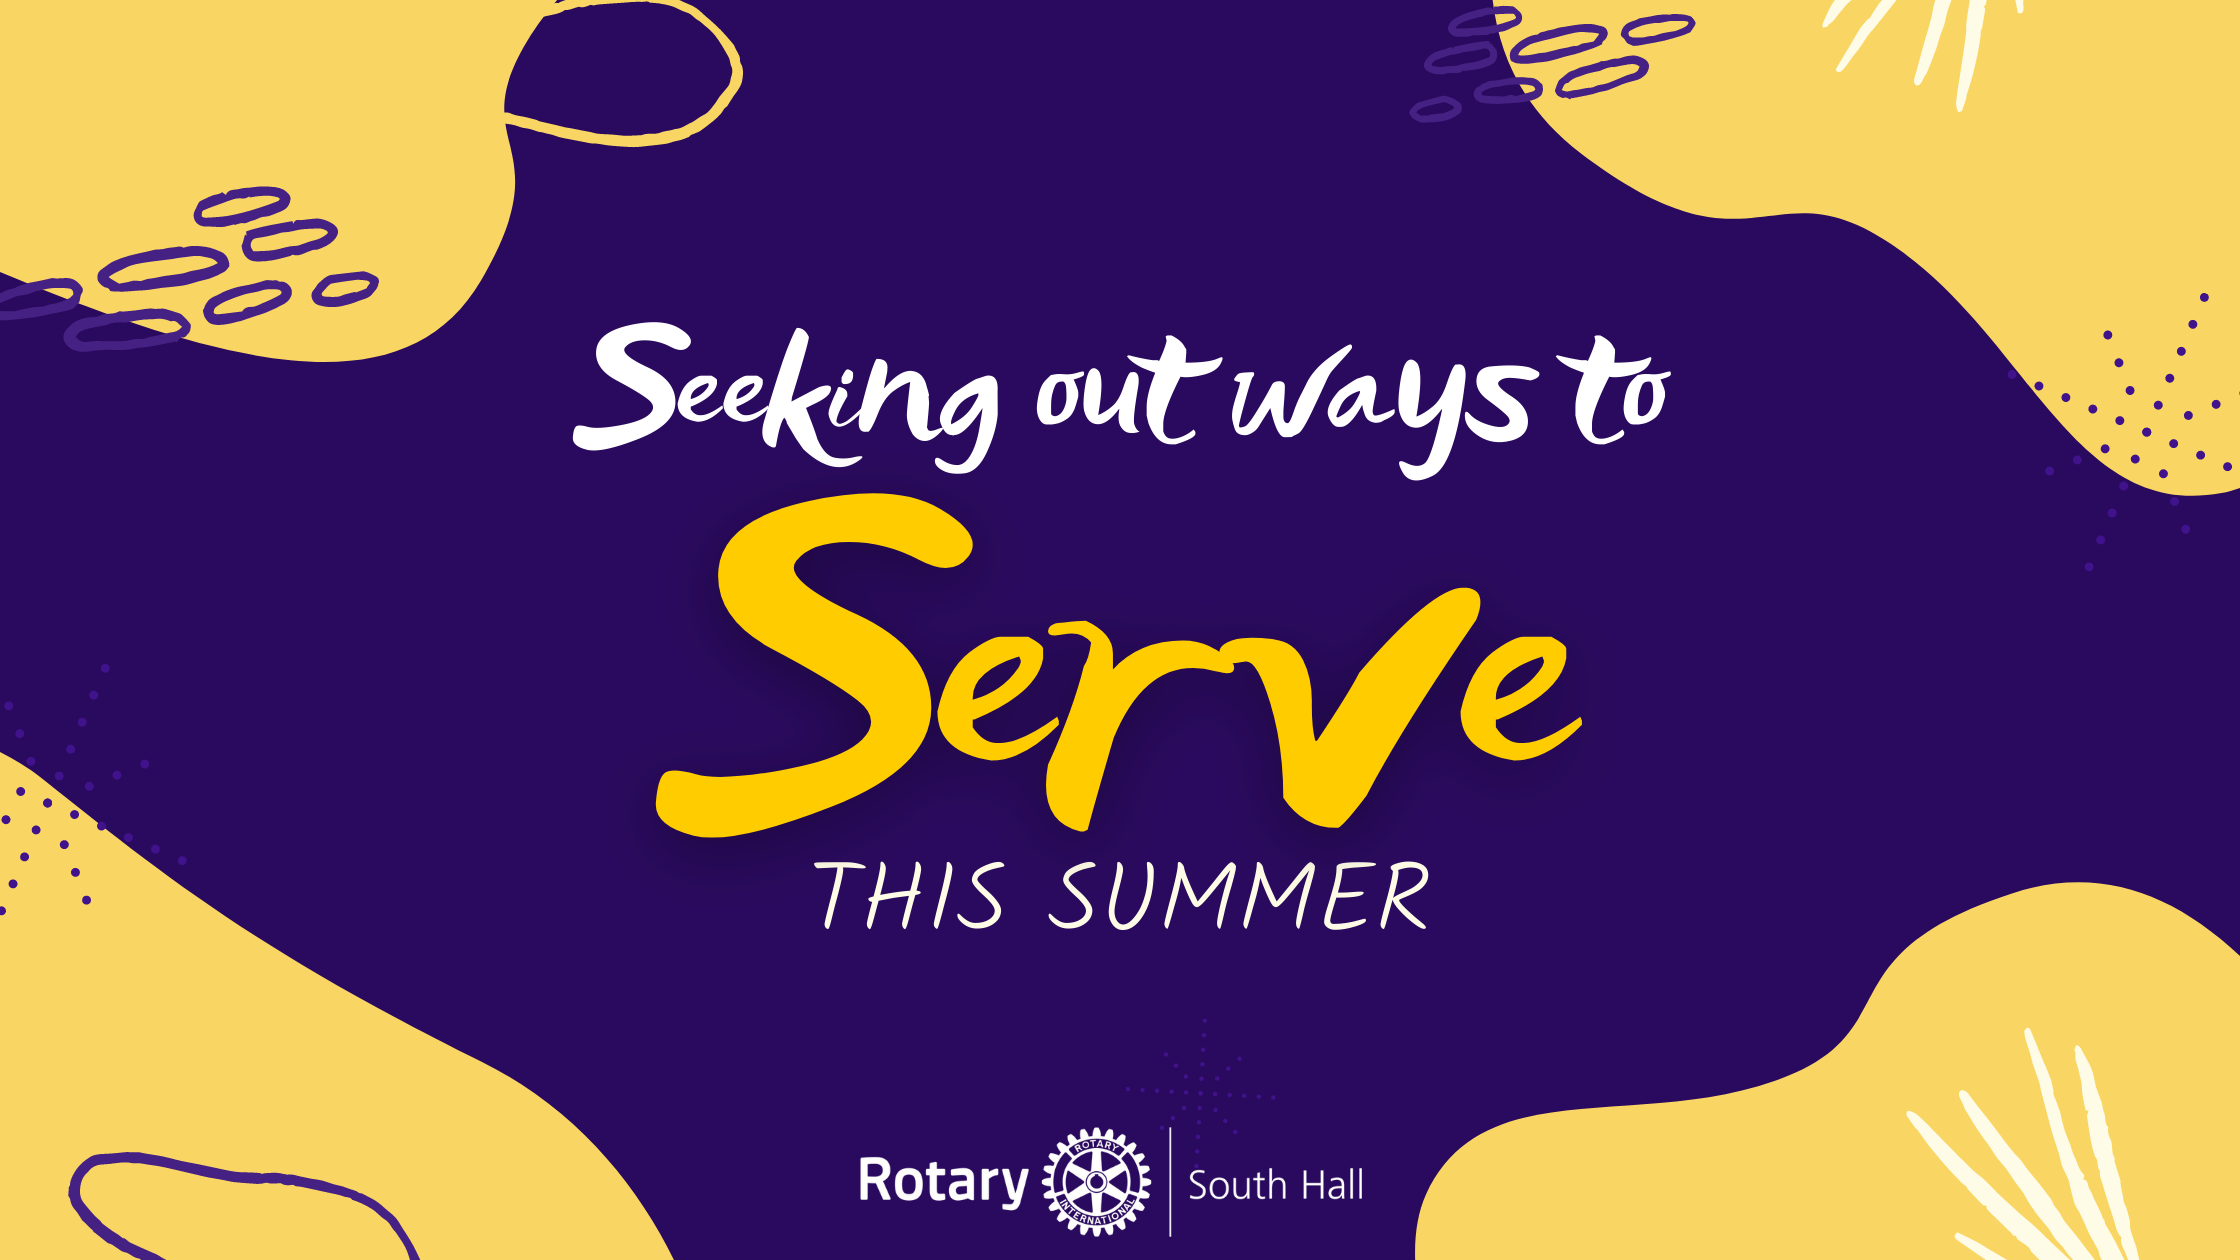 Seeking out ways to Serve this Summer